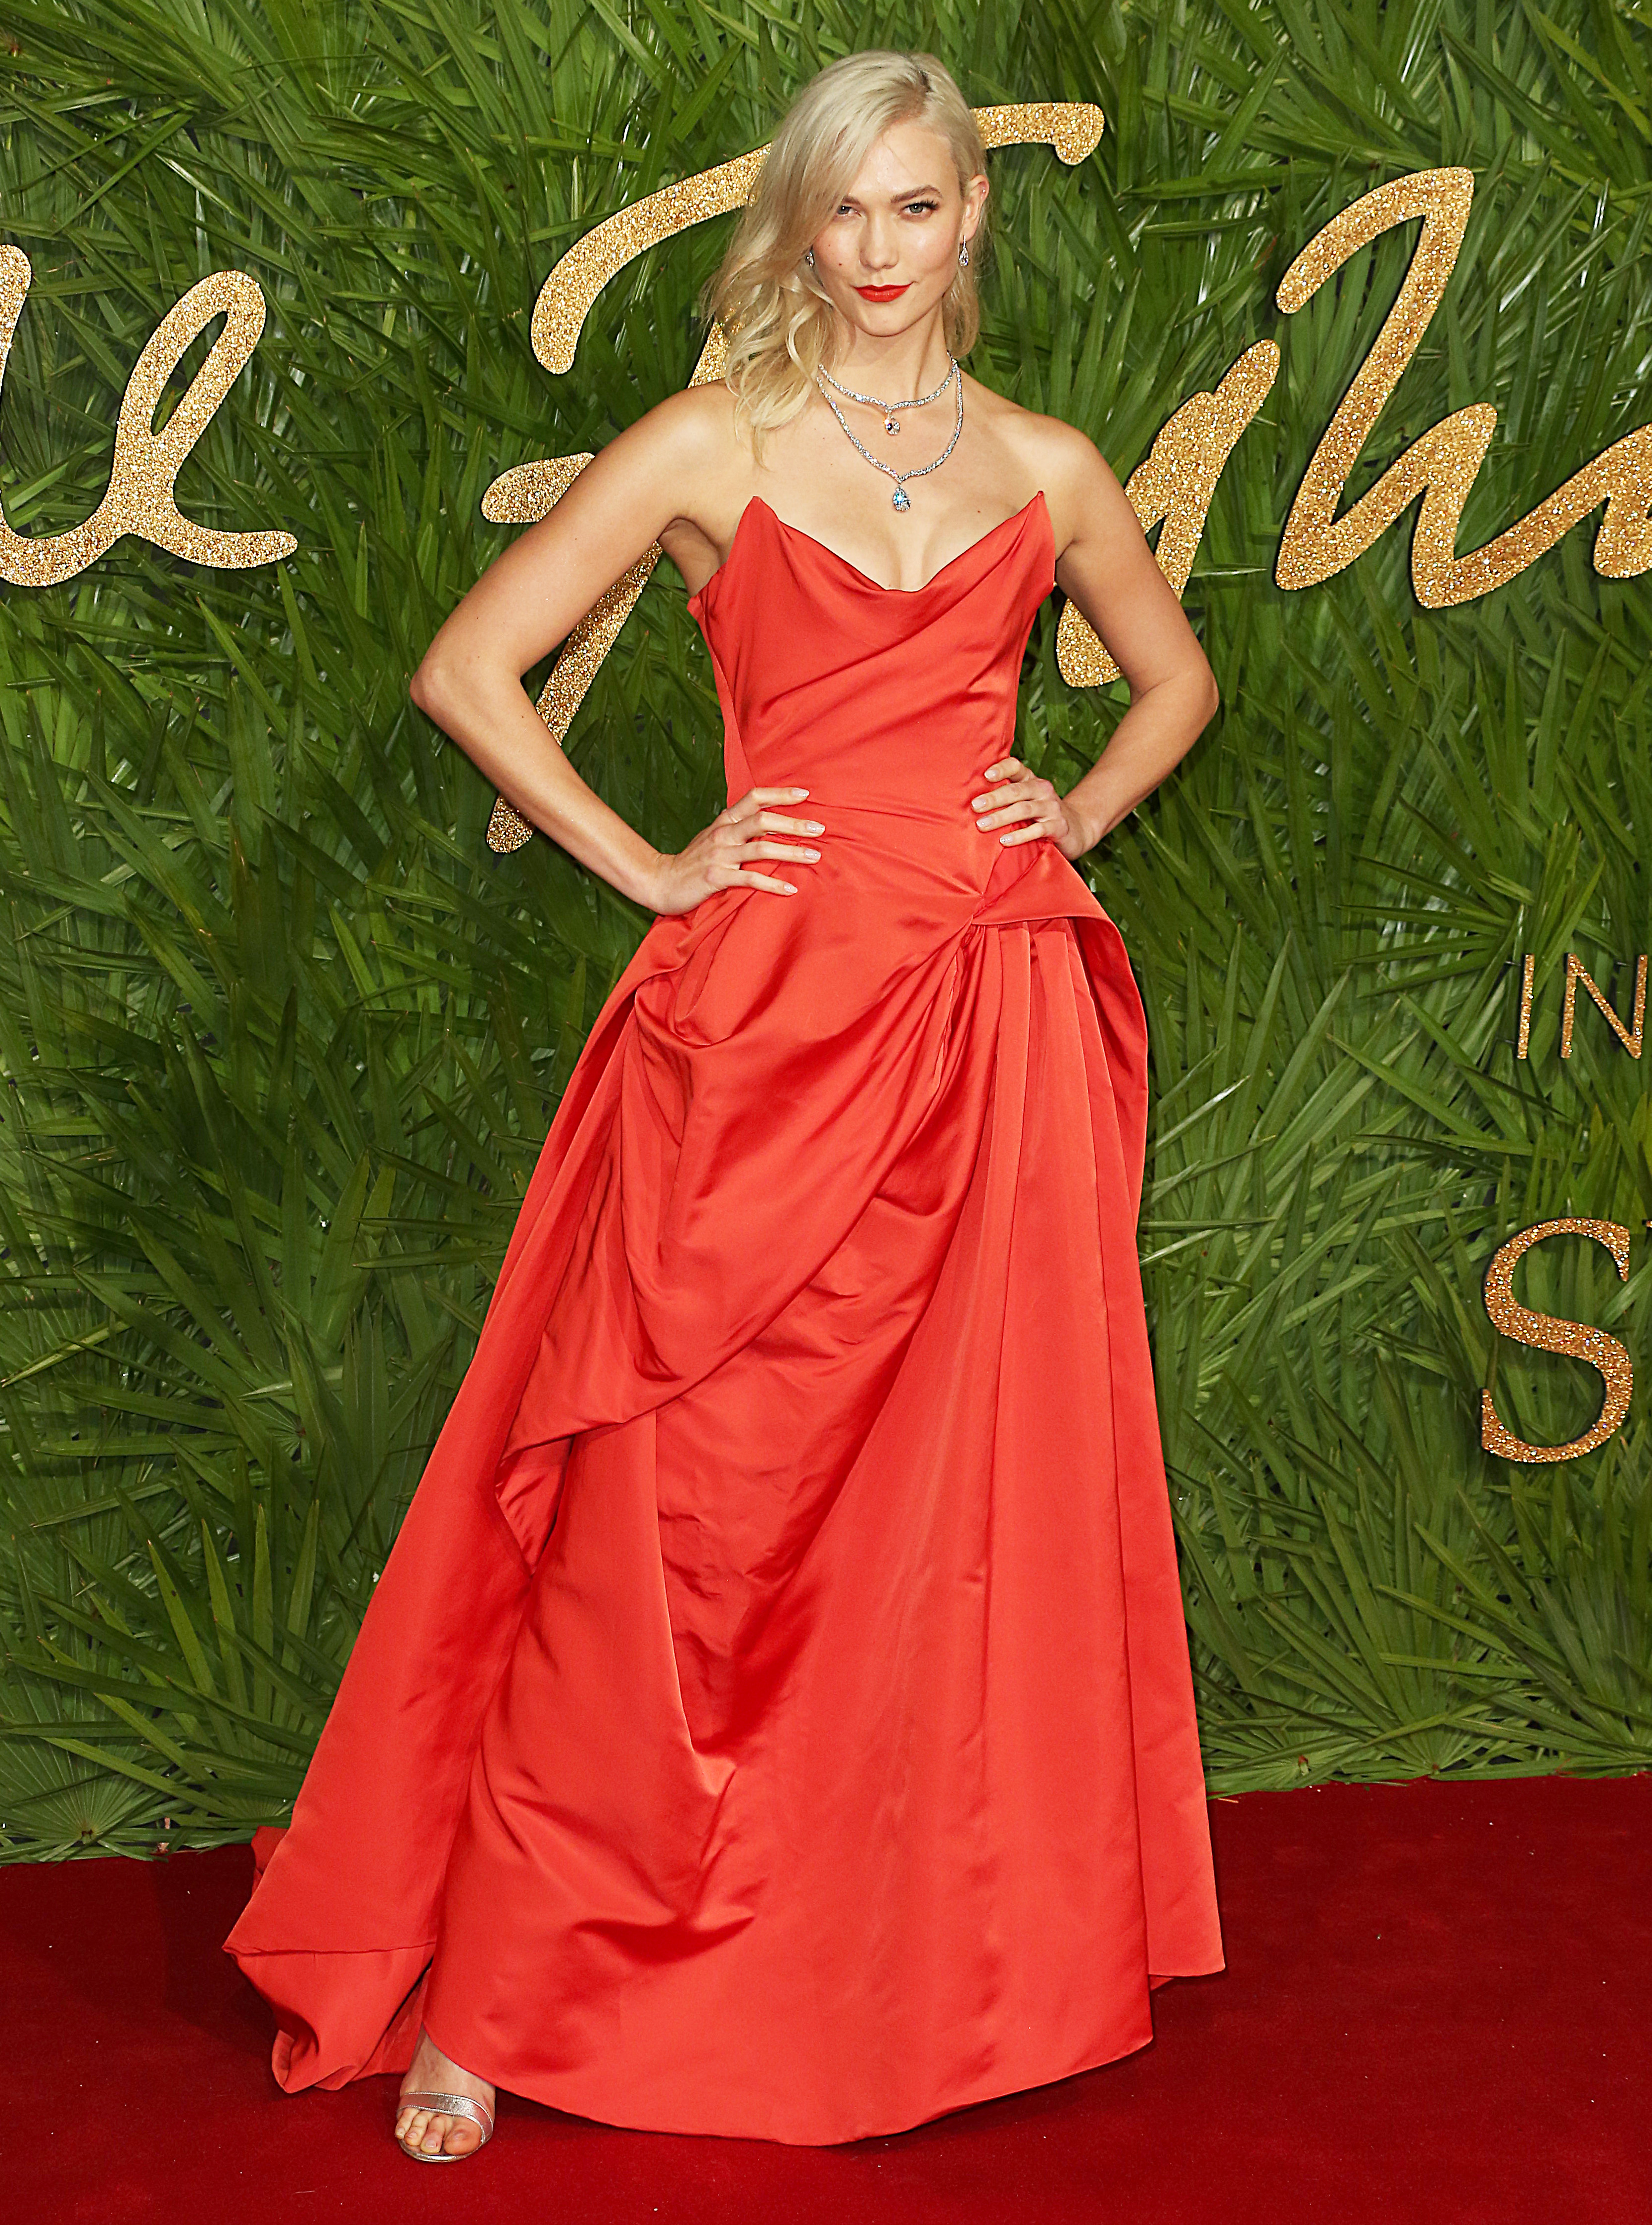 The Fashion Awards 2017, Royal Albert Hall, London UK, 04 December 2017, Photo by Brett D. Cove <P> Pictured: Karlie Kloss <B>Ref: SPL1632930  051217  </B><BR/> Picture by: Brett D. Cove / Splash News<BR/> </P><P> <B>Splash News and Pictures</B><BR/> Los Angeles:310-821-2666<BR/> New York:212-619-2666<BR/> London:870-934-2666<BR/> <span id=